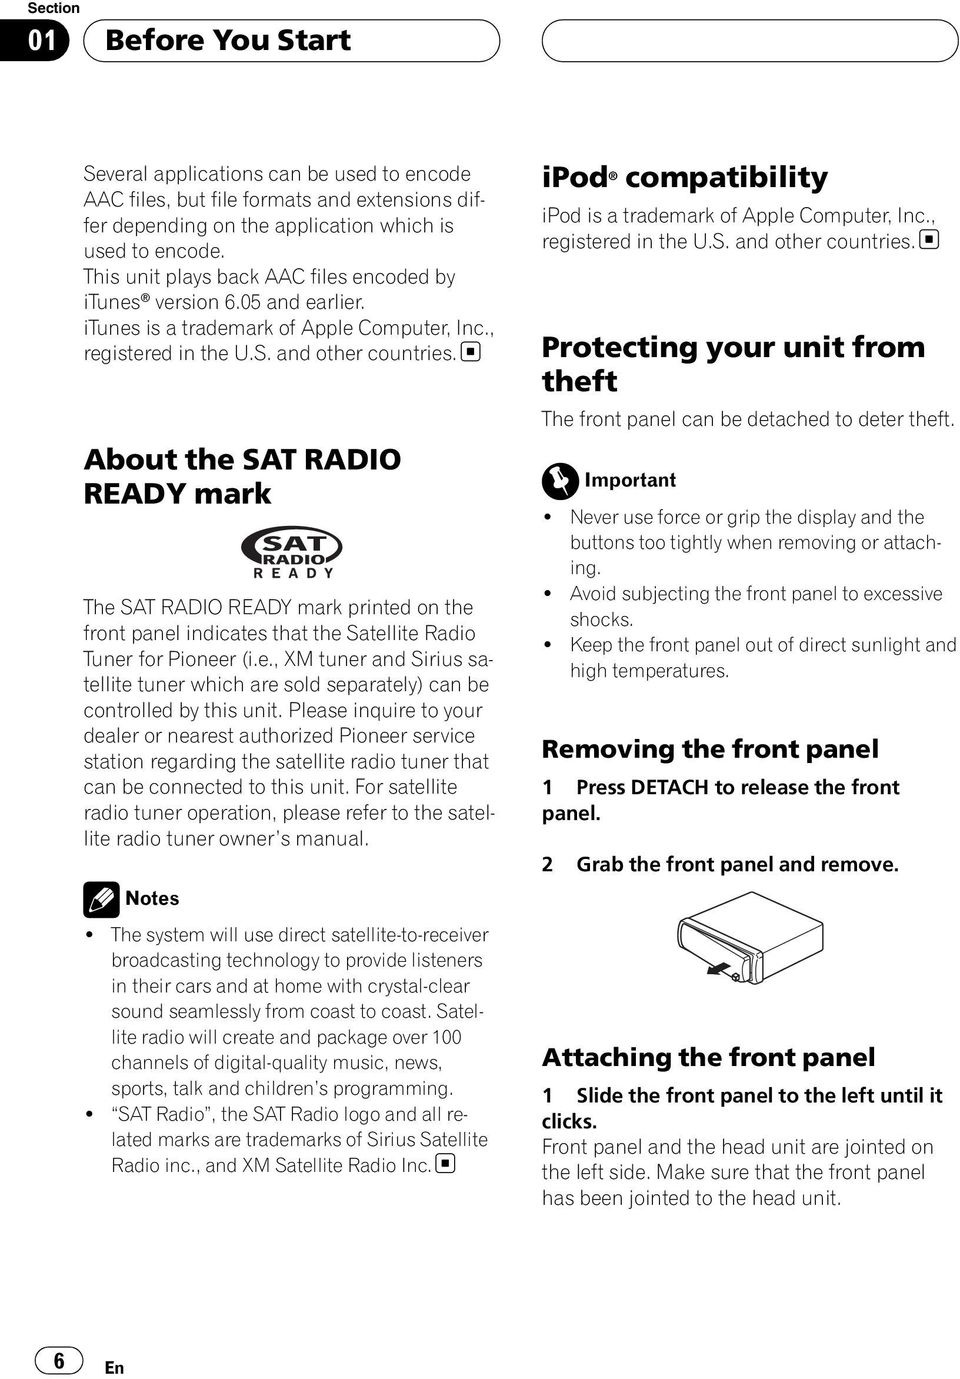 About the SAT RADIO READY mark The SAT RADIO READY mark printed on the front panel indicates that the Satellite Radio Tuner for Pioneer (i.e., XM tuner and Sirius satellite tuner which are sold separately) can be controlled by this unit.